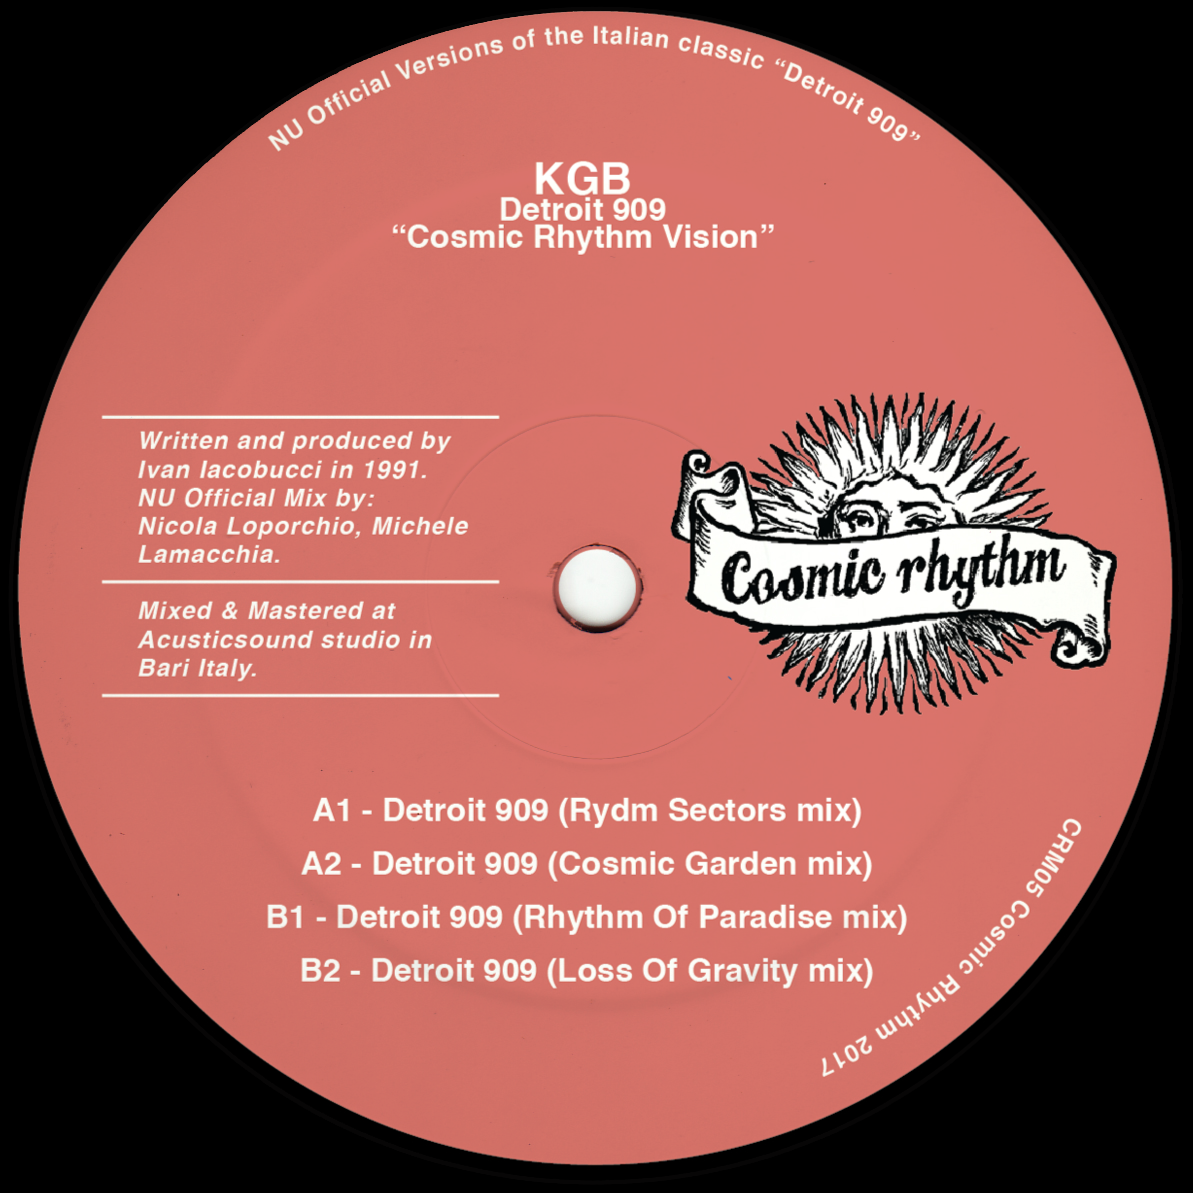 Cosmic Rhythm Records, Rhythm Of Paradise, Label, Italy, House, Test Pressing, Cosmic Garden, Spiritual Emphasi, Loss Of Gravity, KGB